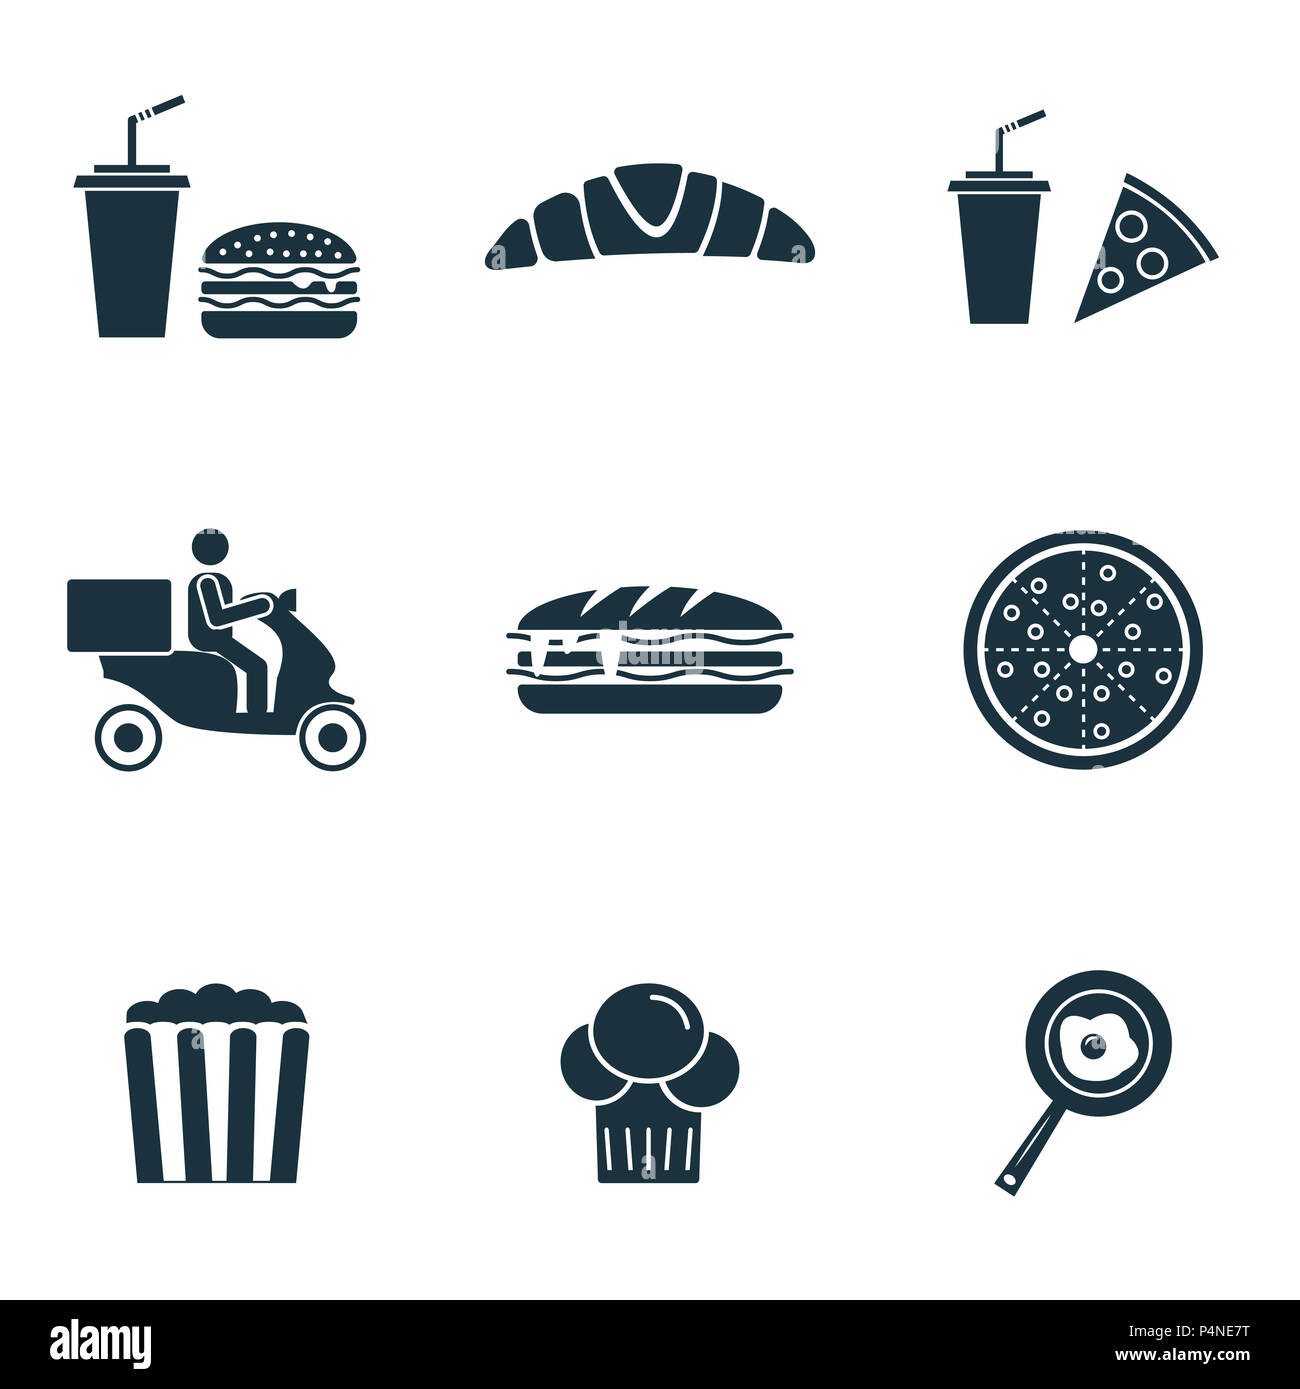 Fastfood icons set. Popcorn icon, croissant icon, pizza icon and more. Premium quality symbol collection. Fastfood icon set simple elements. - Stock Image